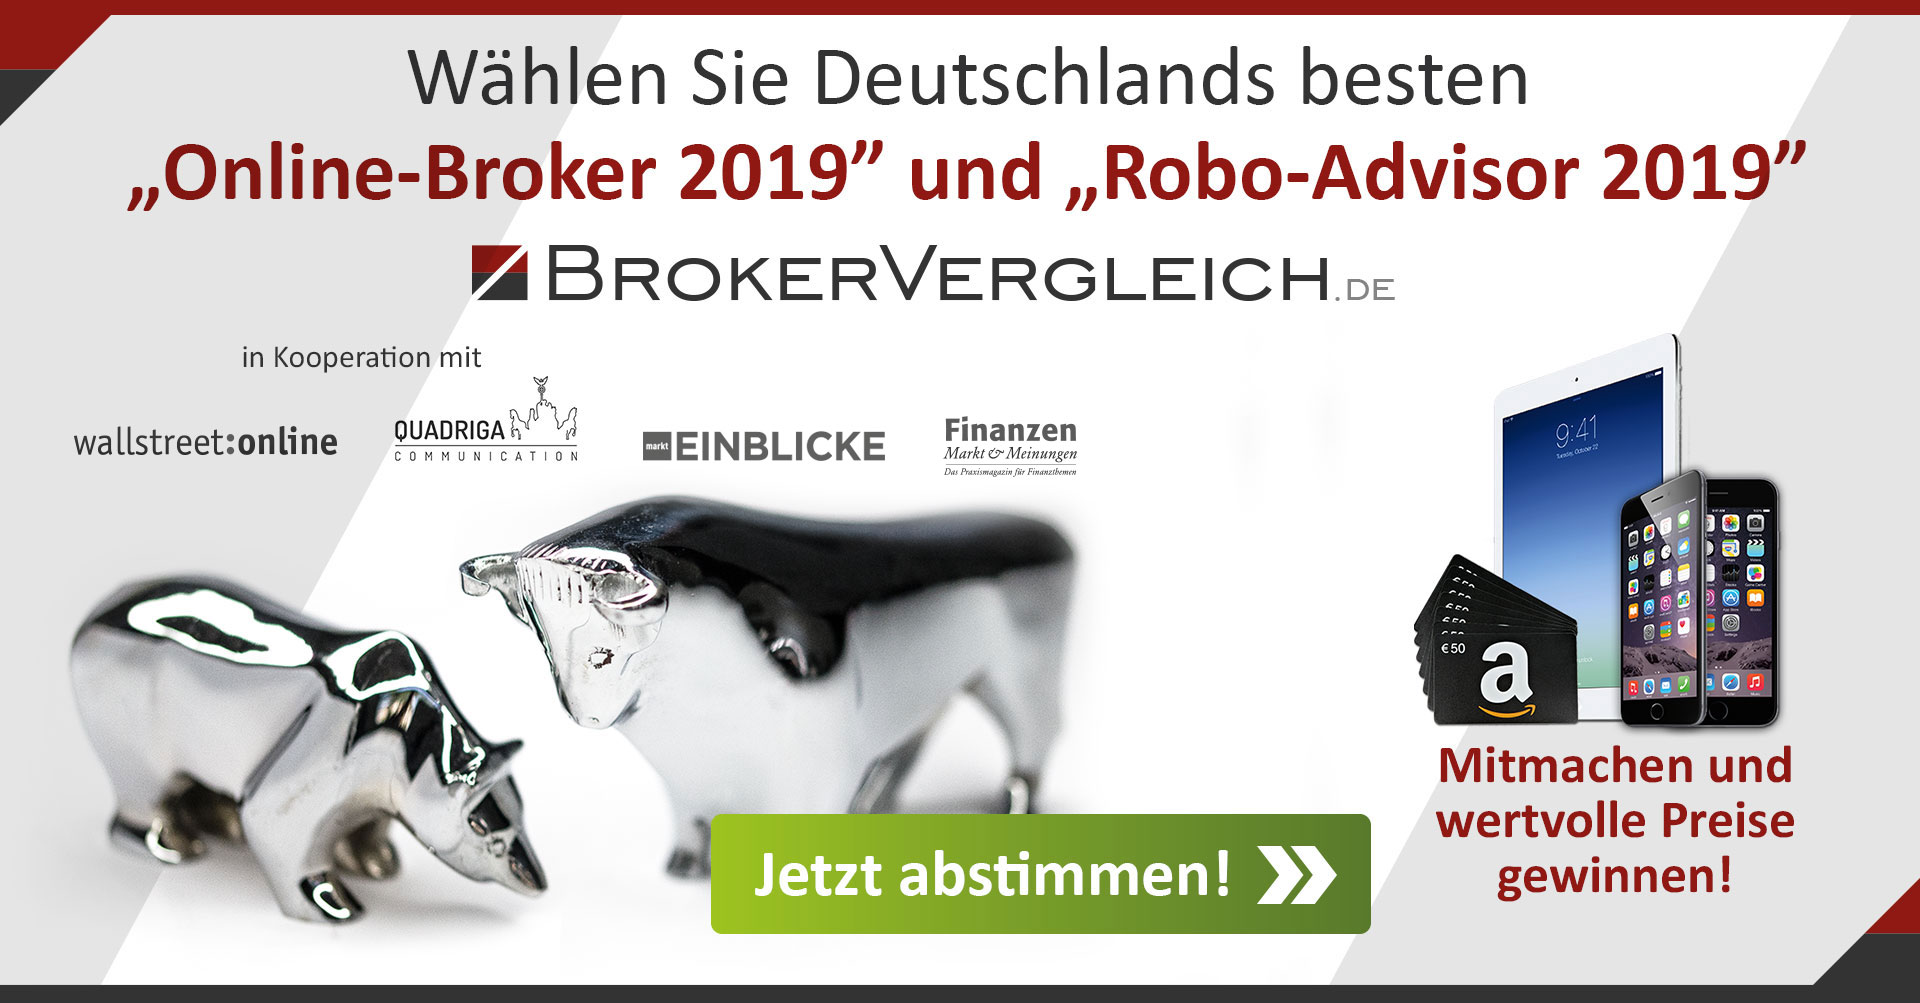 broker-and-robo-advisor-2019-brokervergleich-de-1920x1003